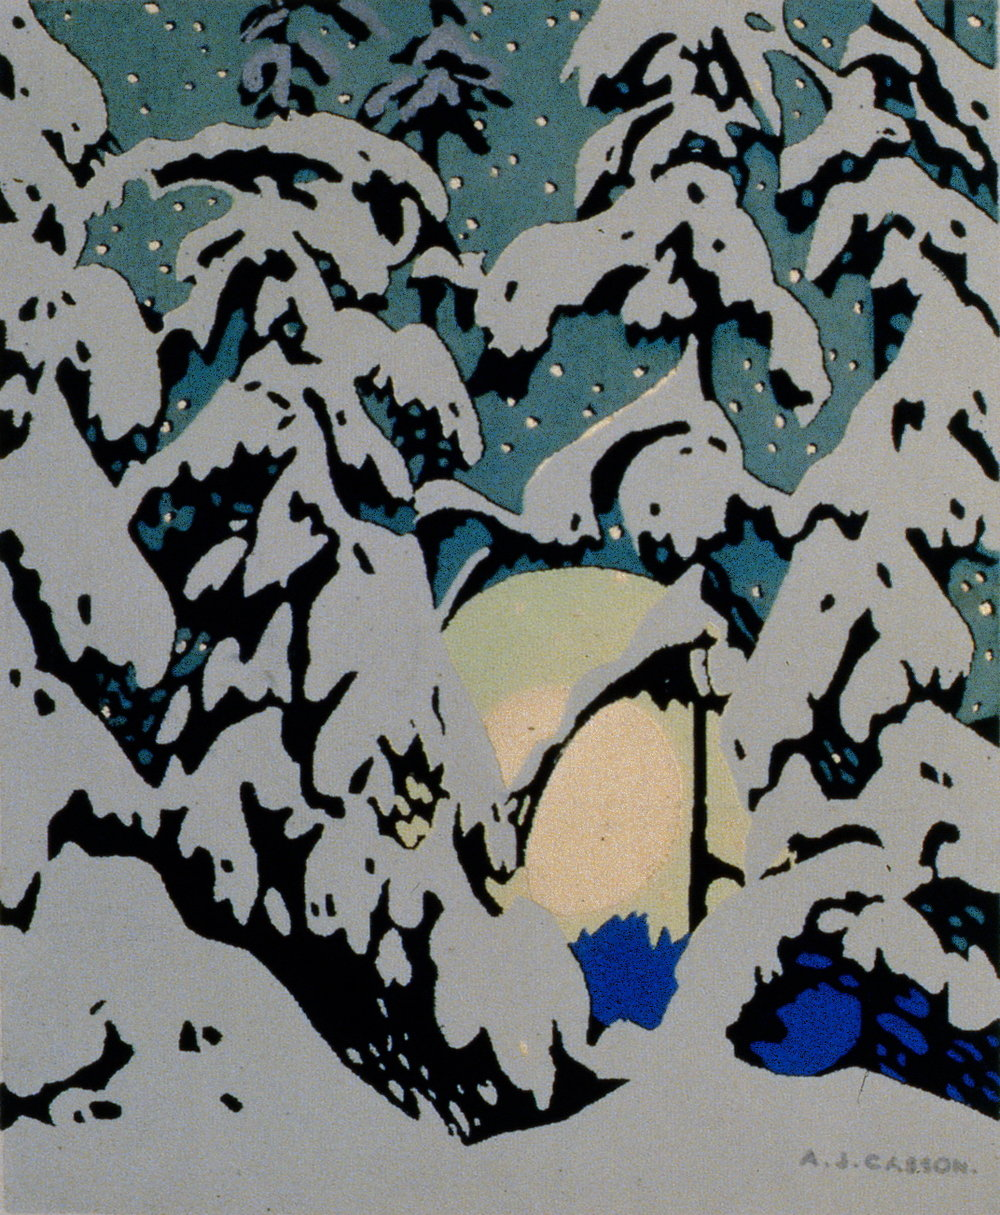 "Untitled, A.J. Casson, serigraph, 4 3/4"" x 3 7/8"", 1984.01.06"